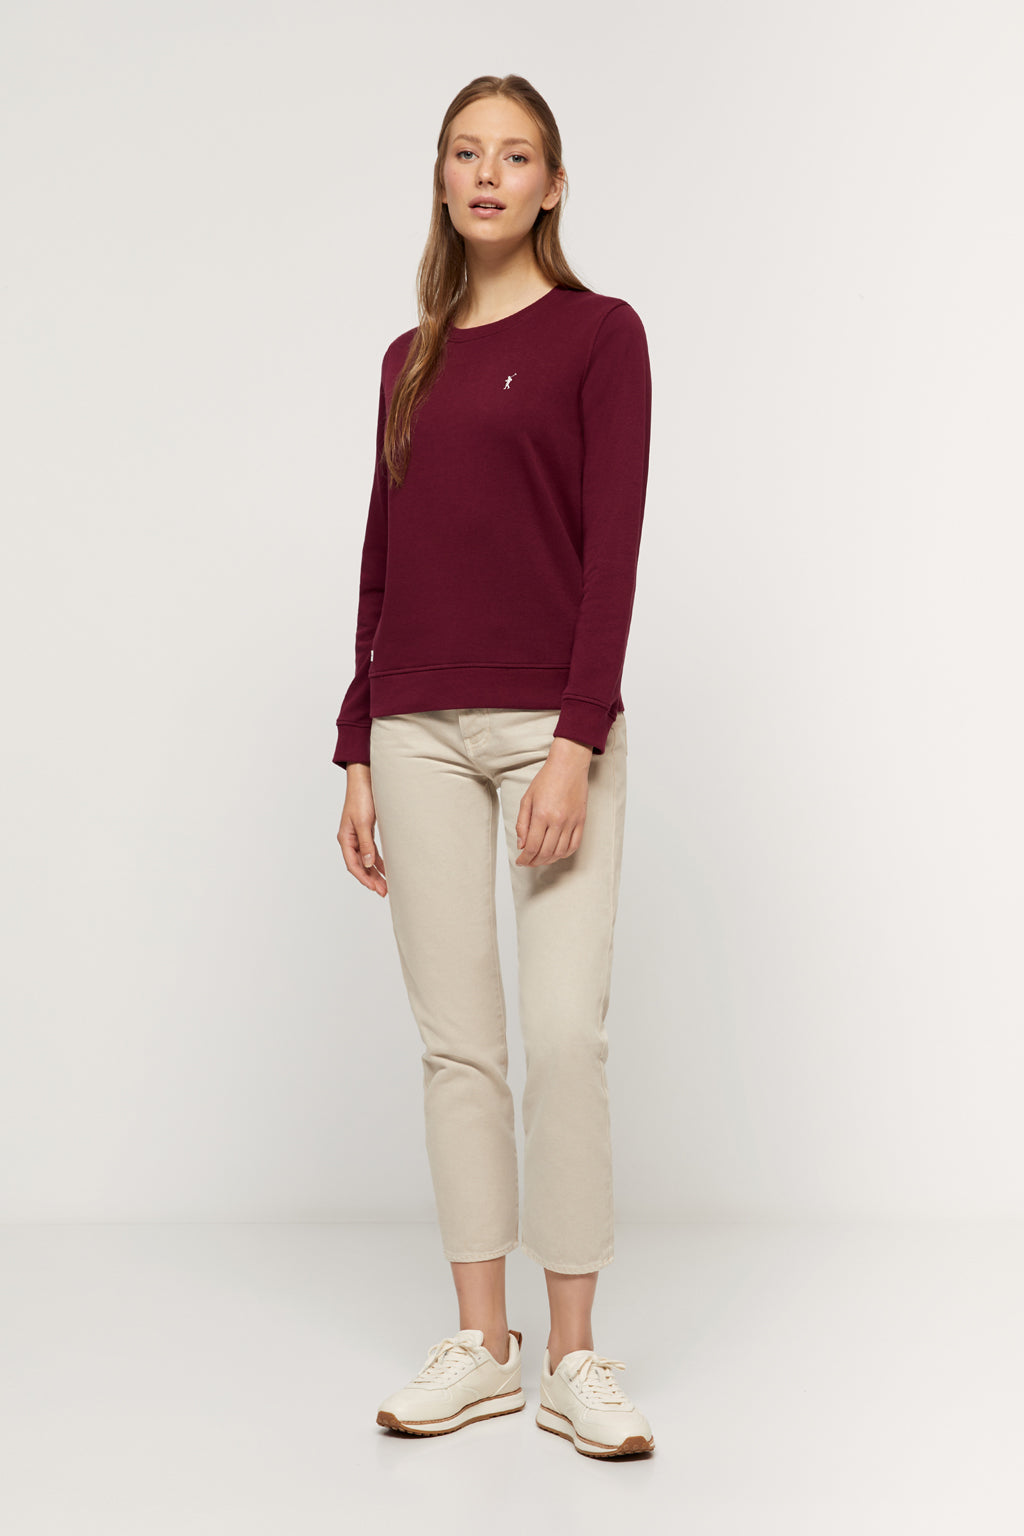 Burgundy round-neck sweatshirt made from organic cotton